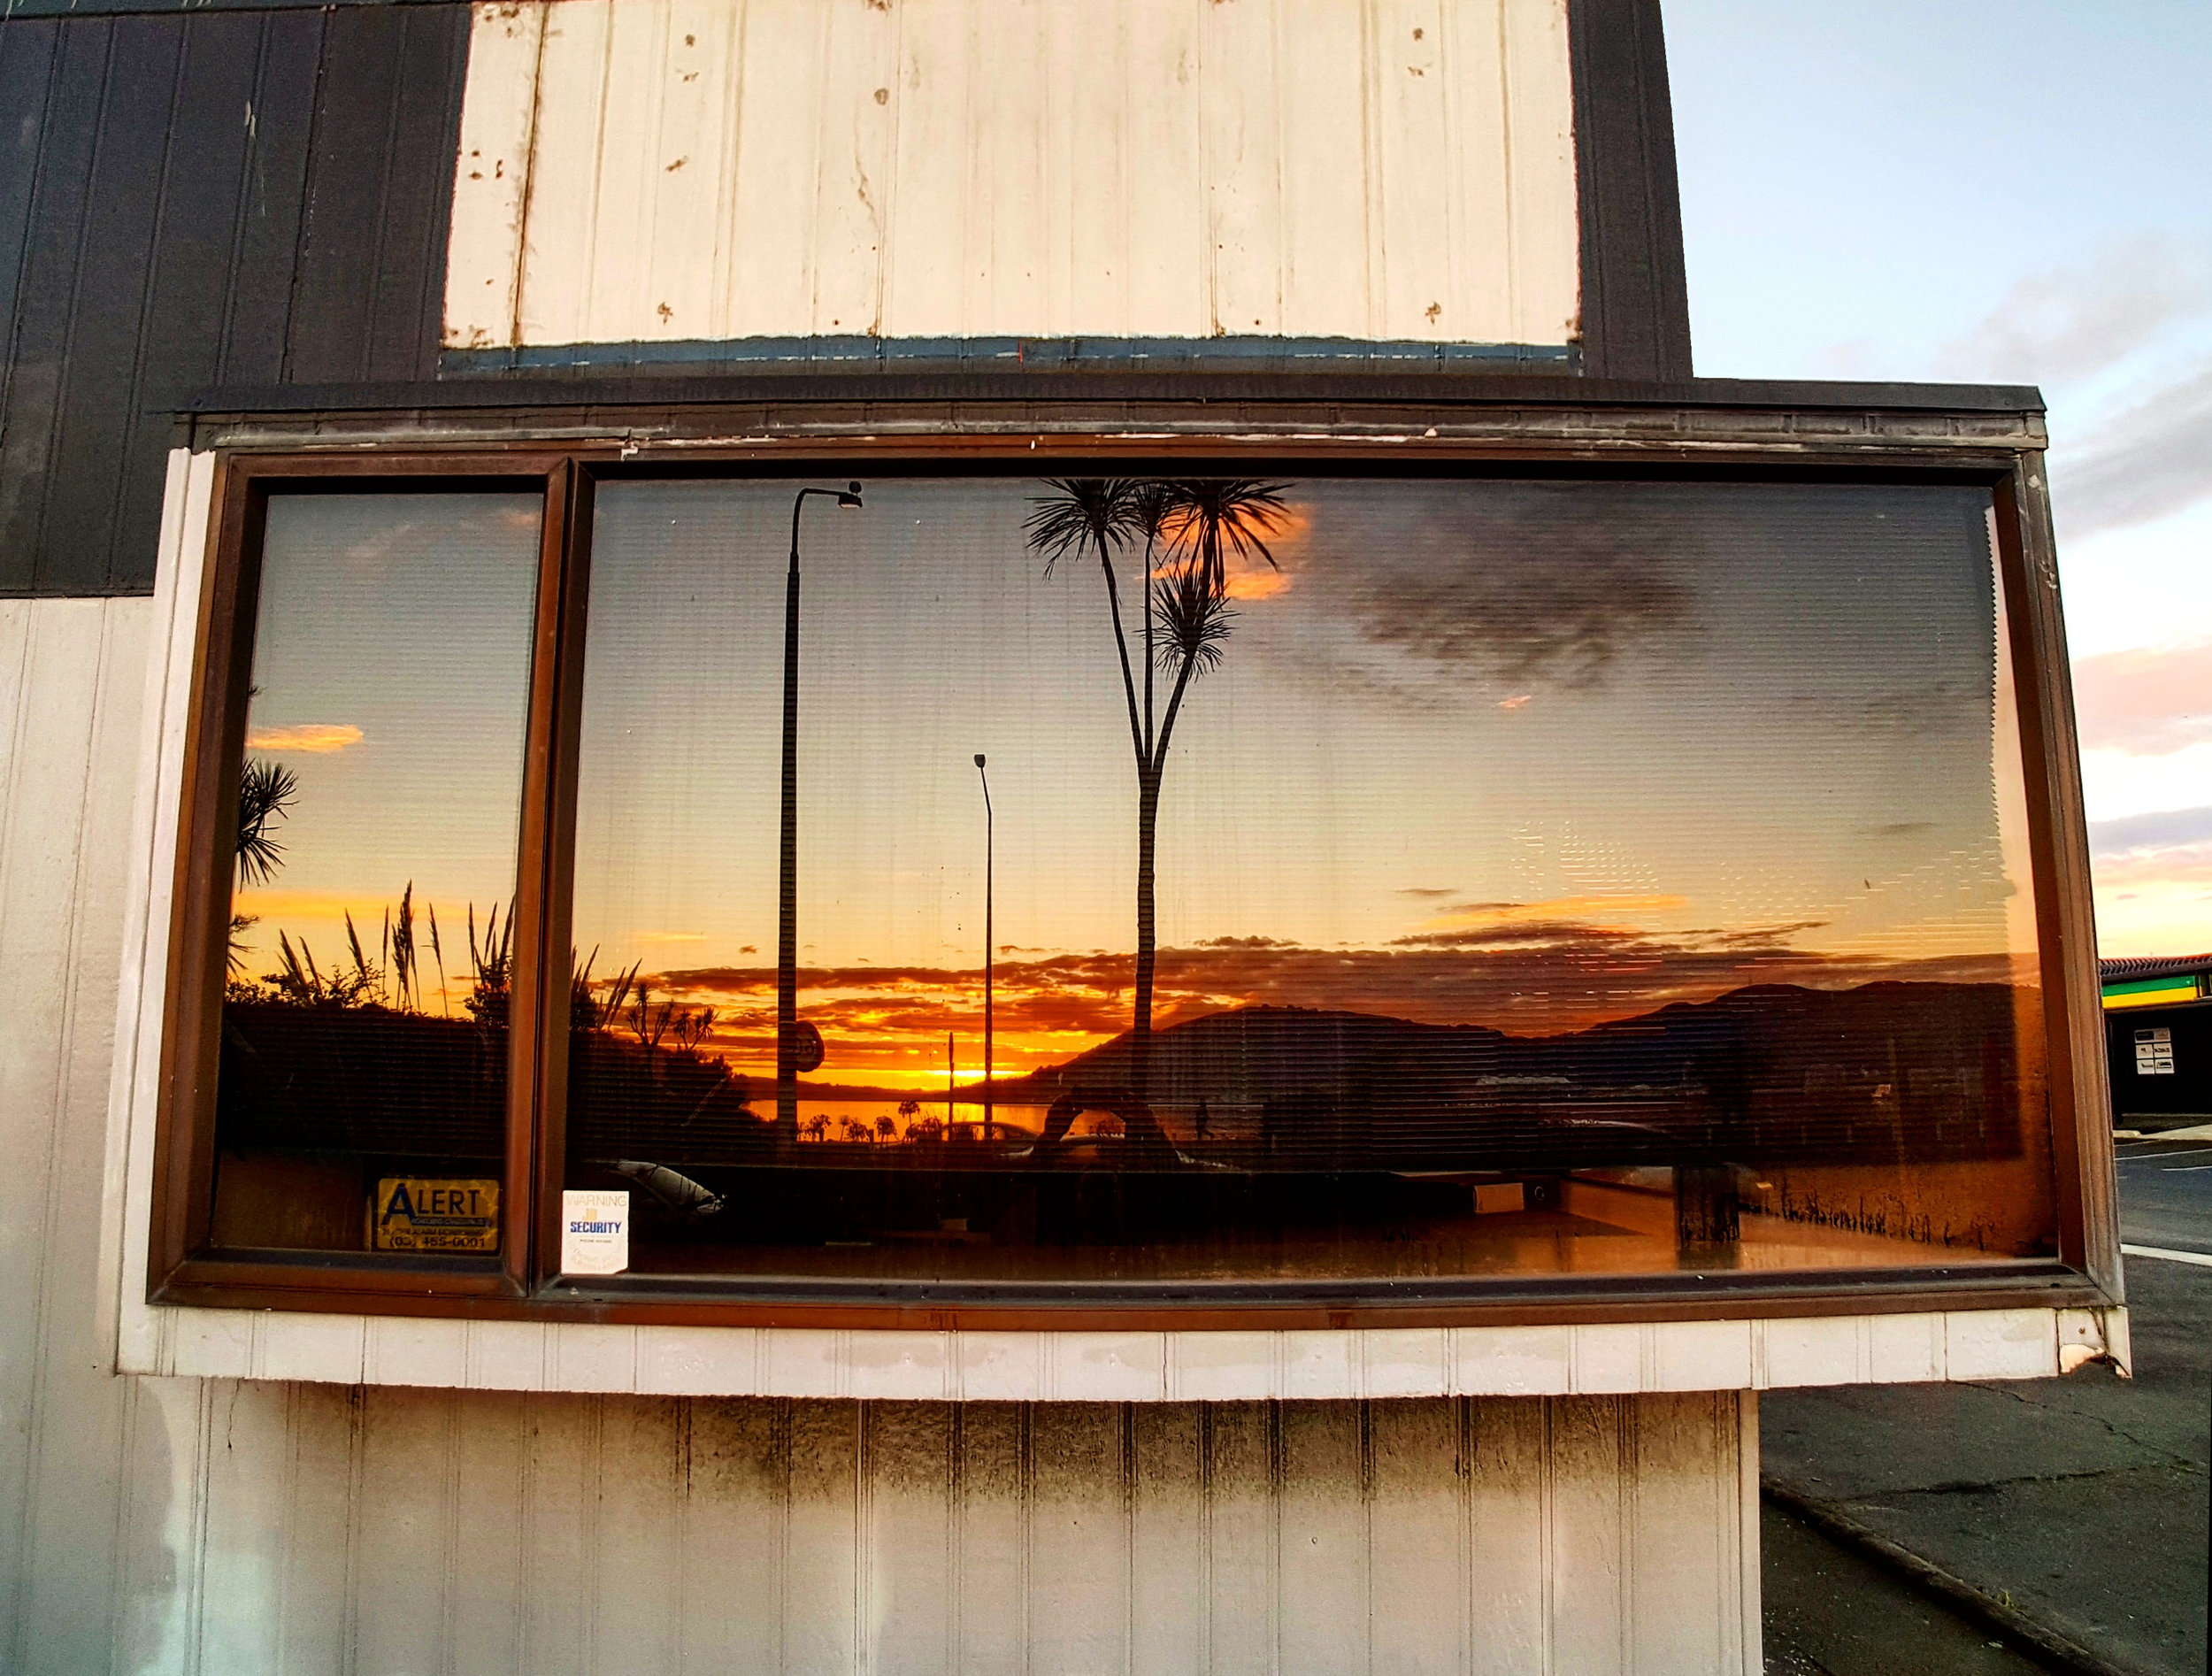 Reflection in a window Otago Harbour